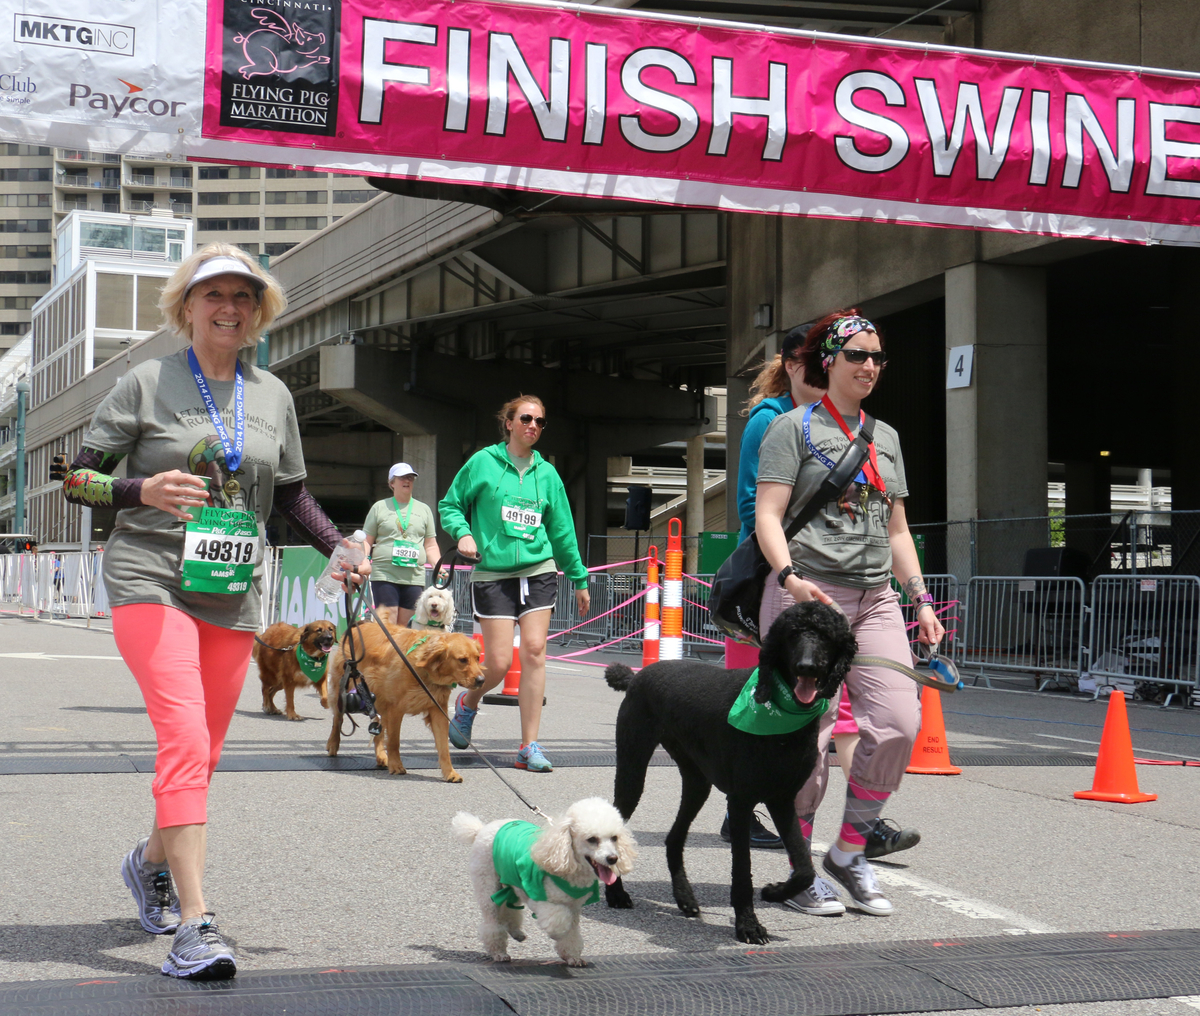 Runners and their dogs cross the finish line during the IAMS Flying Fur dog run in downtown Cincinnati, Sat., May 3, 2014. More than 500 dogs and owners ran in the two-mile race as part of races taking place during the Flying Pig Marathon weekend events. IAMS Bowls of Love will be donating a bag of pet food for each dog running in the event to the SPCA in Cincinnati. (Tom Uhlman/AP Images for IAMS)